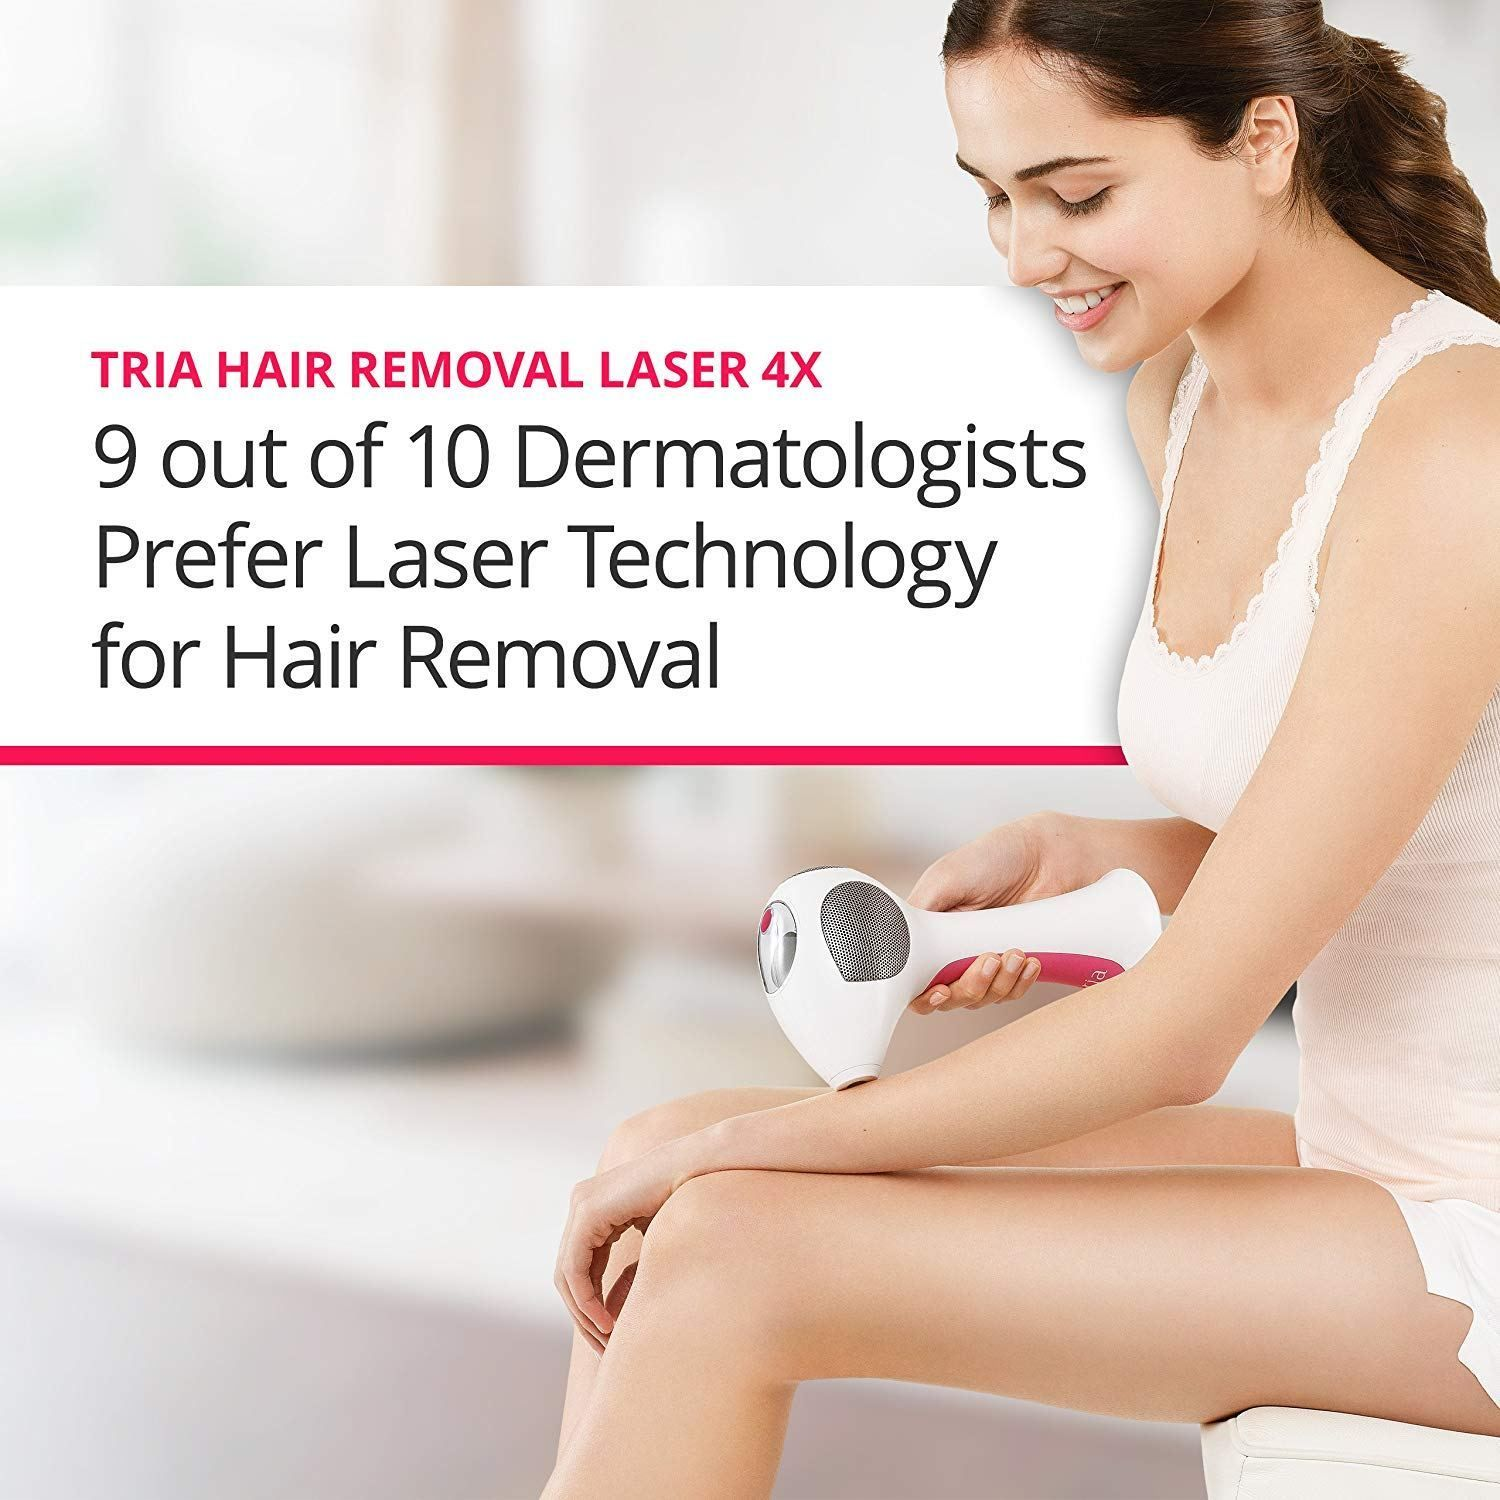 Laser Hair Removal At Home Women Product Review Tria